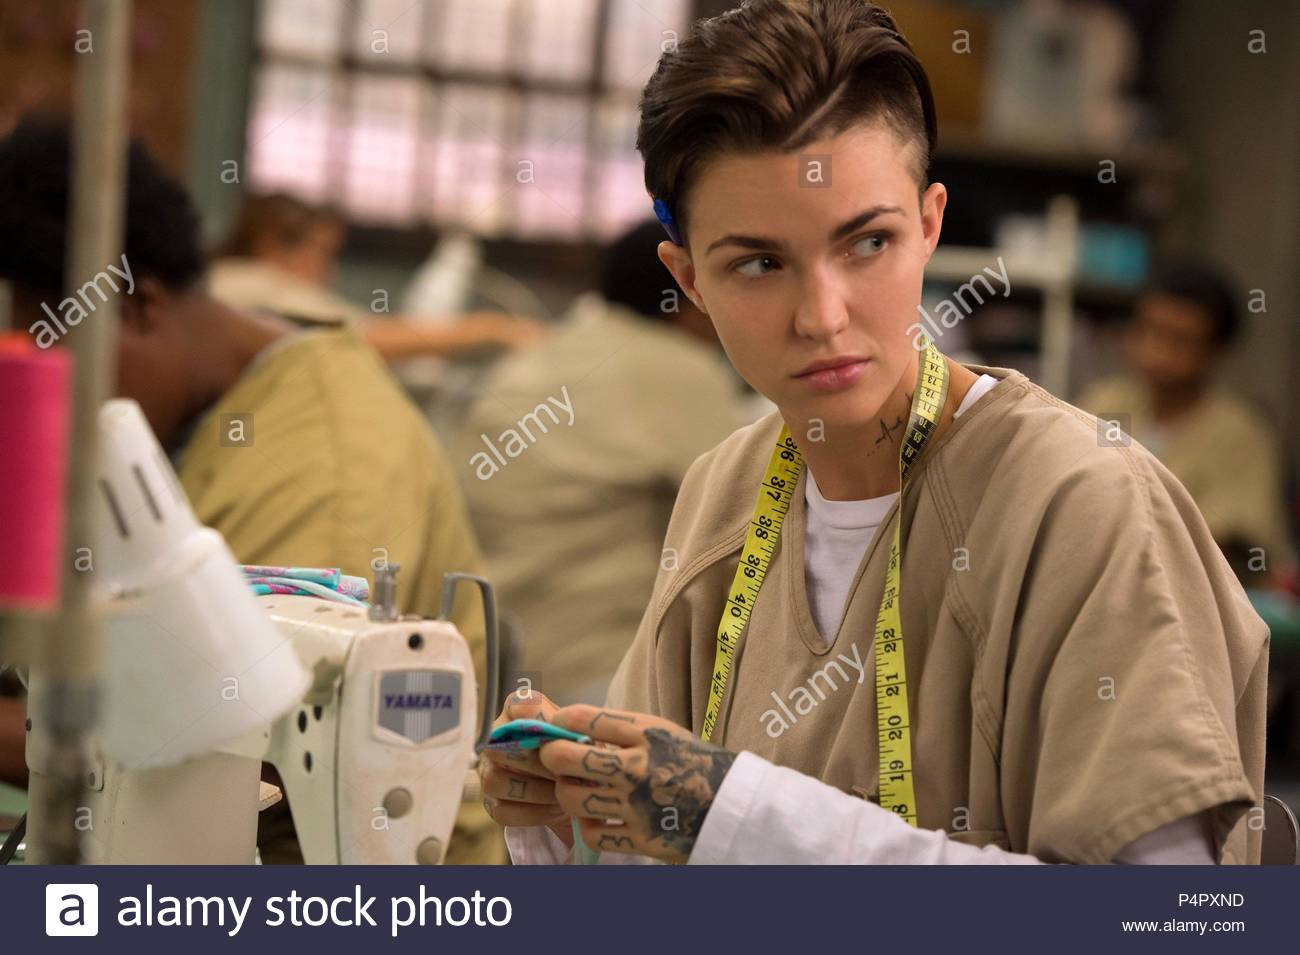 Ruby Rose Stock Photos & Ruby Rose Stock Images